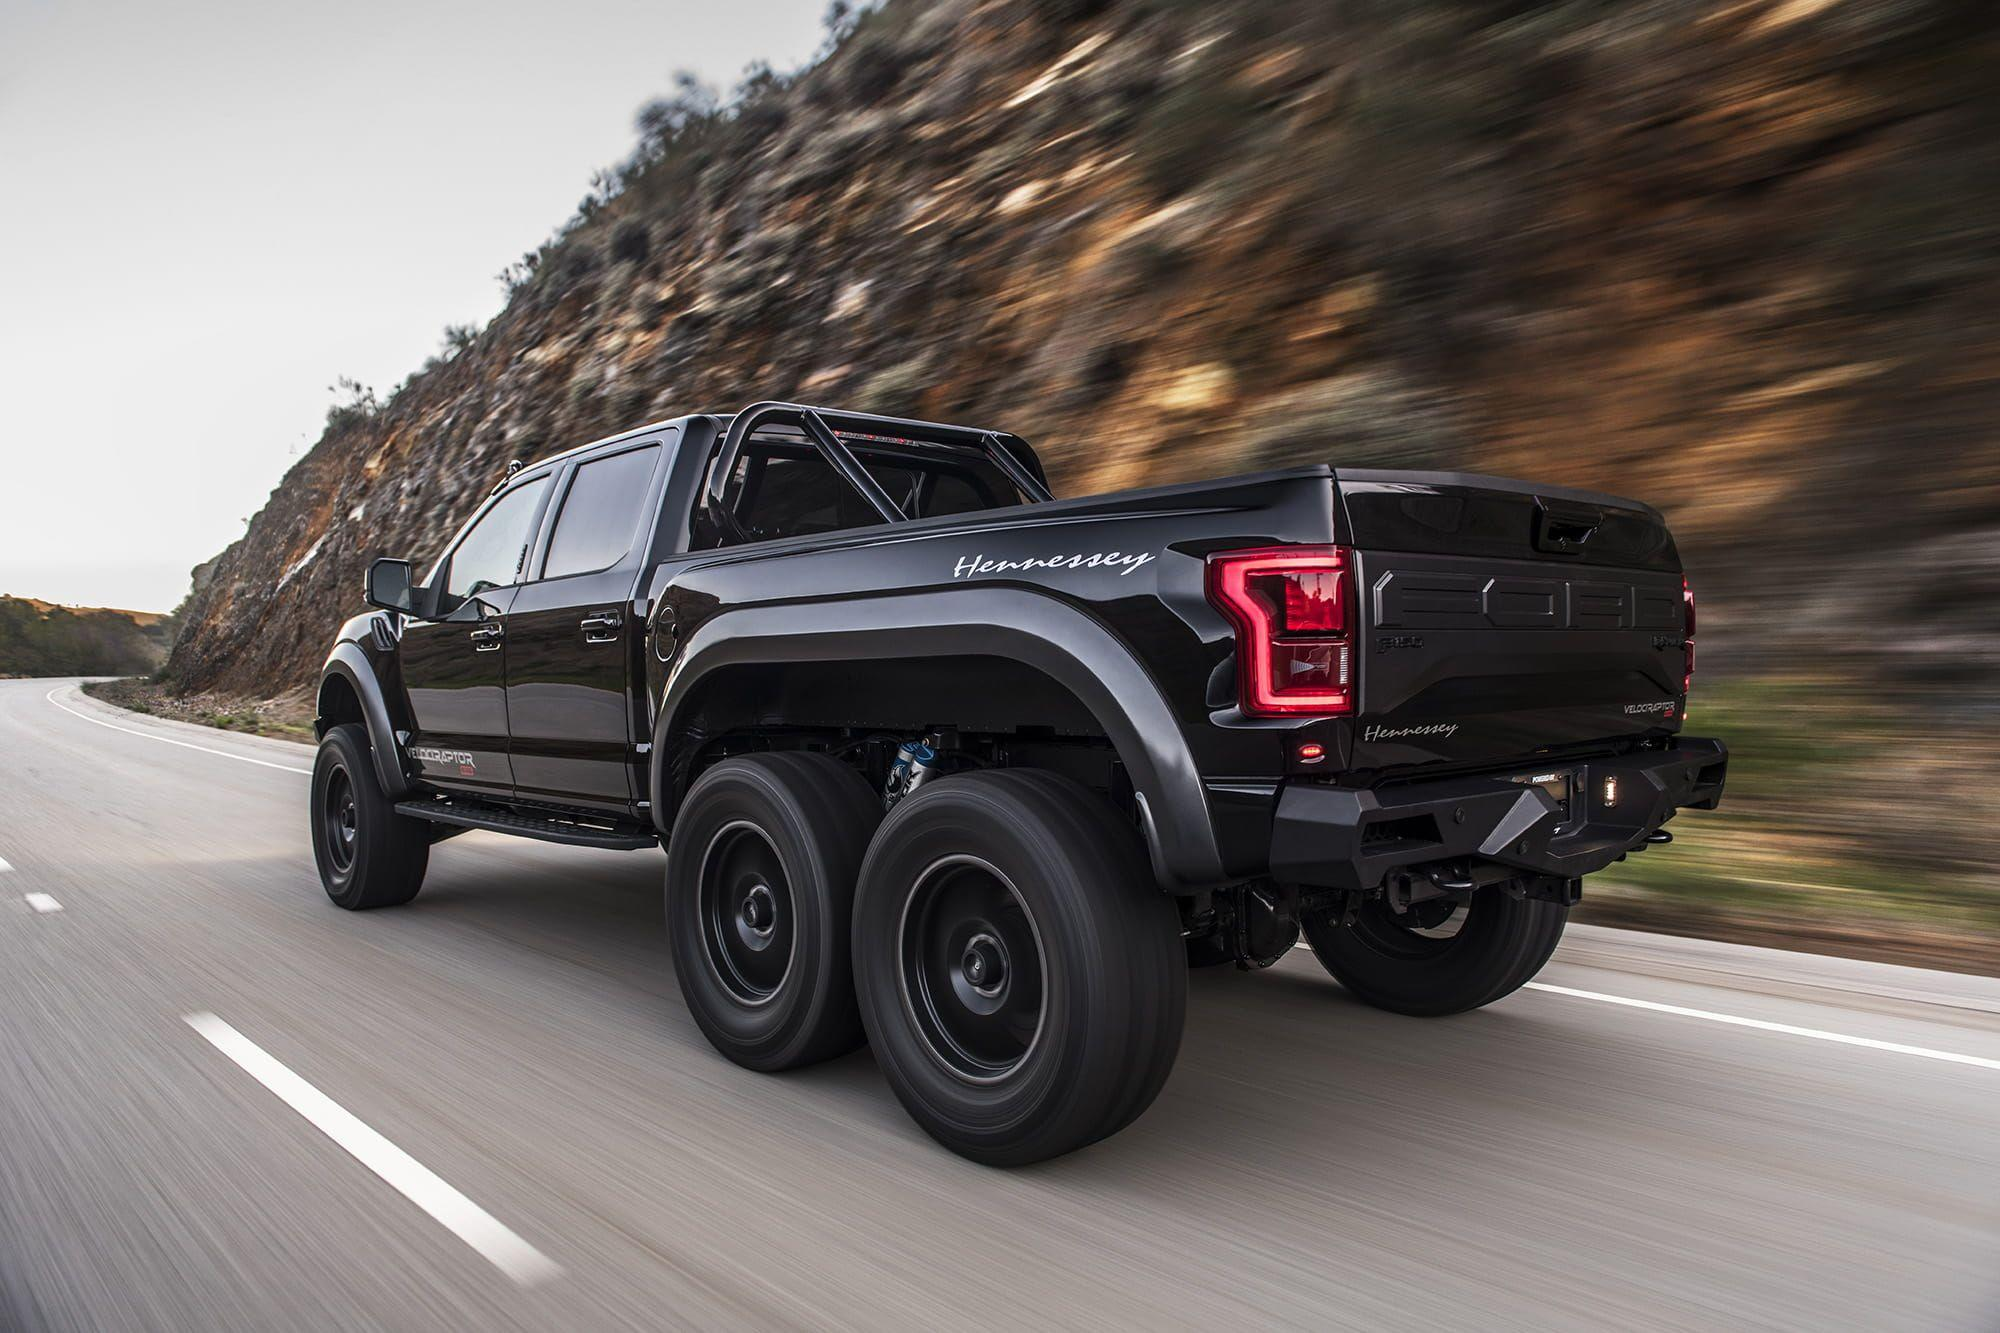 "<p>Some of these pickups are impractical, others are too fast for their own good, but all are outrageous. Here are some of the wildest pickup trucks out there.</p><p><a class=""link rapid-noclick-resp"" href=""https://www.caranddriver.com/features/g32969563/ford-f-150-craziest-stunts-and-maneuvers/"" rel=""nofollow noopener"" target=""_blank"" data-ylk=""slk:F-ing Crazy: Stunts Featuring the Ford F-150"">F-ing Crazy: Stunts Featuring the Ford F-150</a></p>"